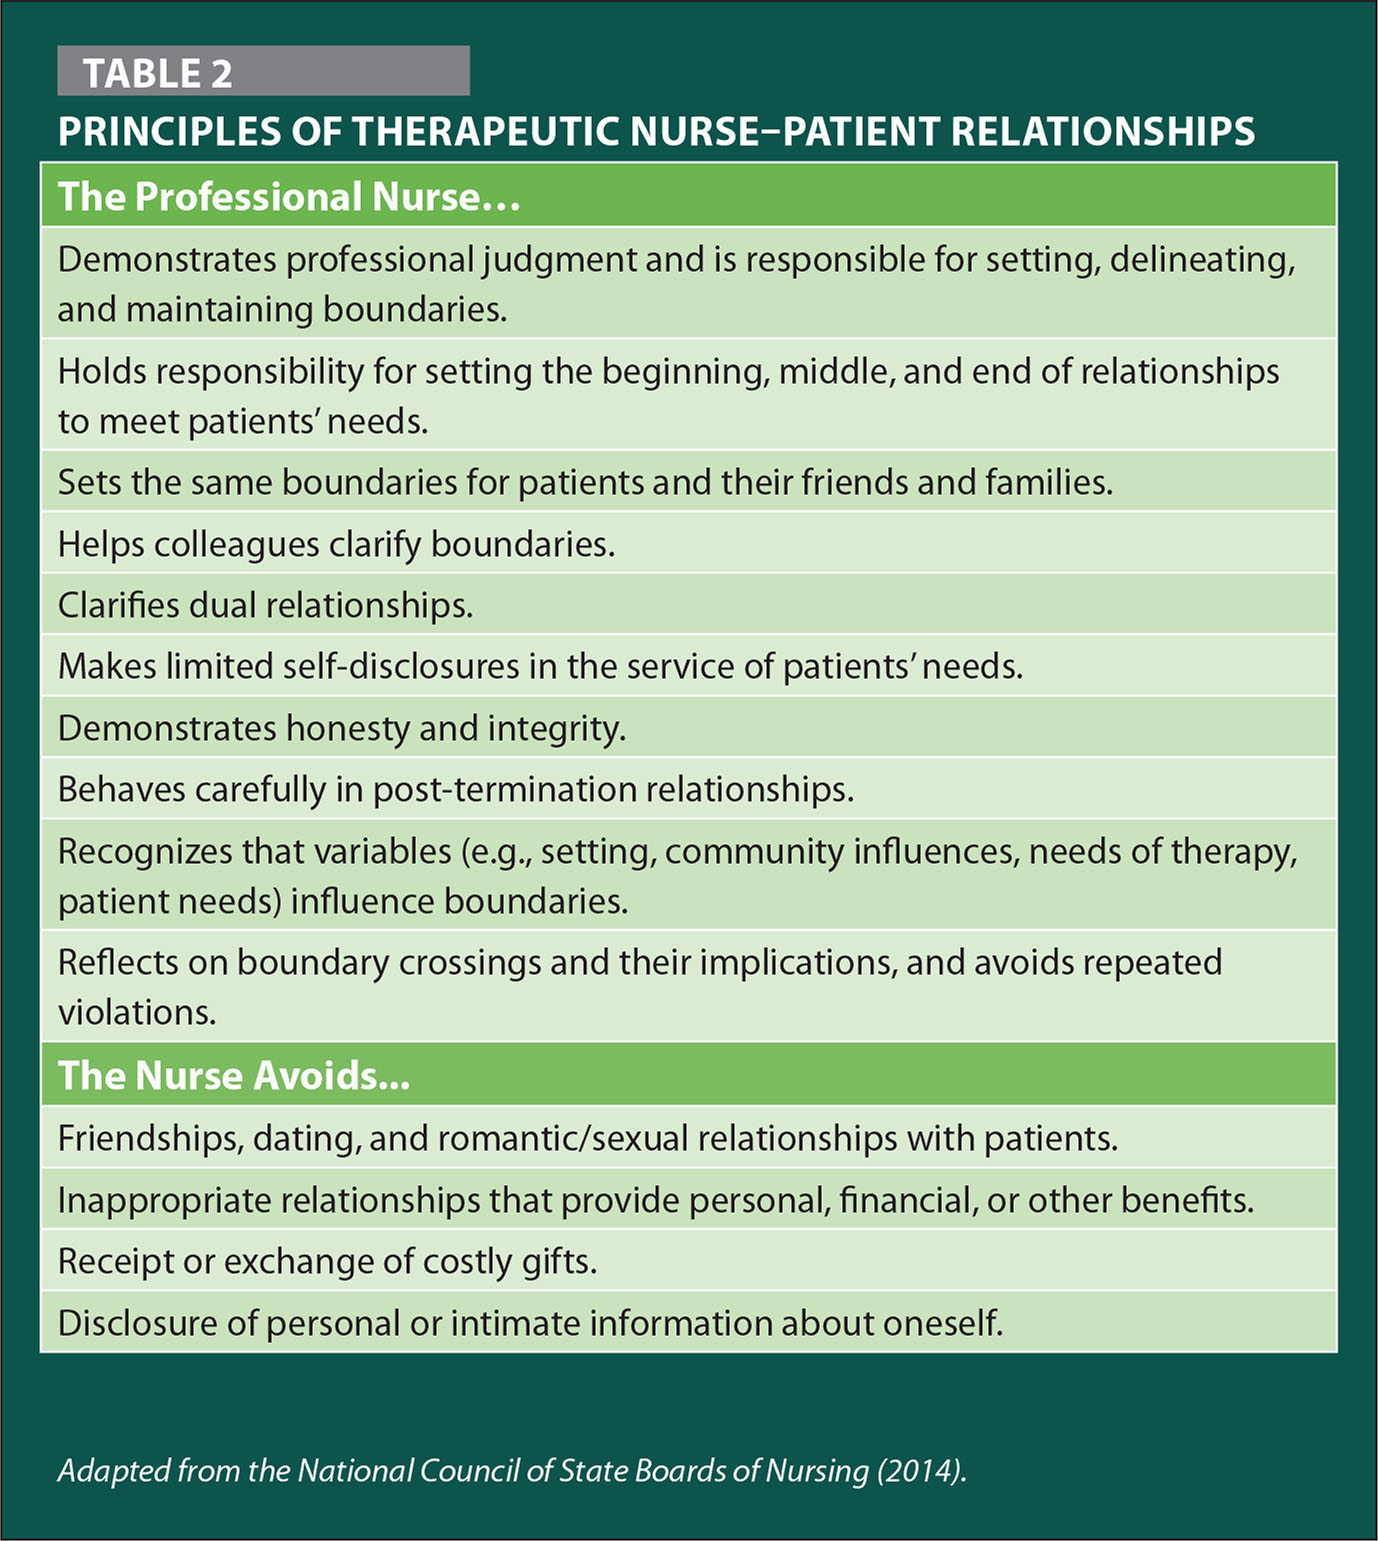 Principles of Therapeutic Nurse–Patient Relationships